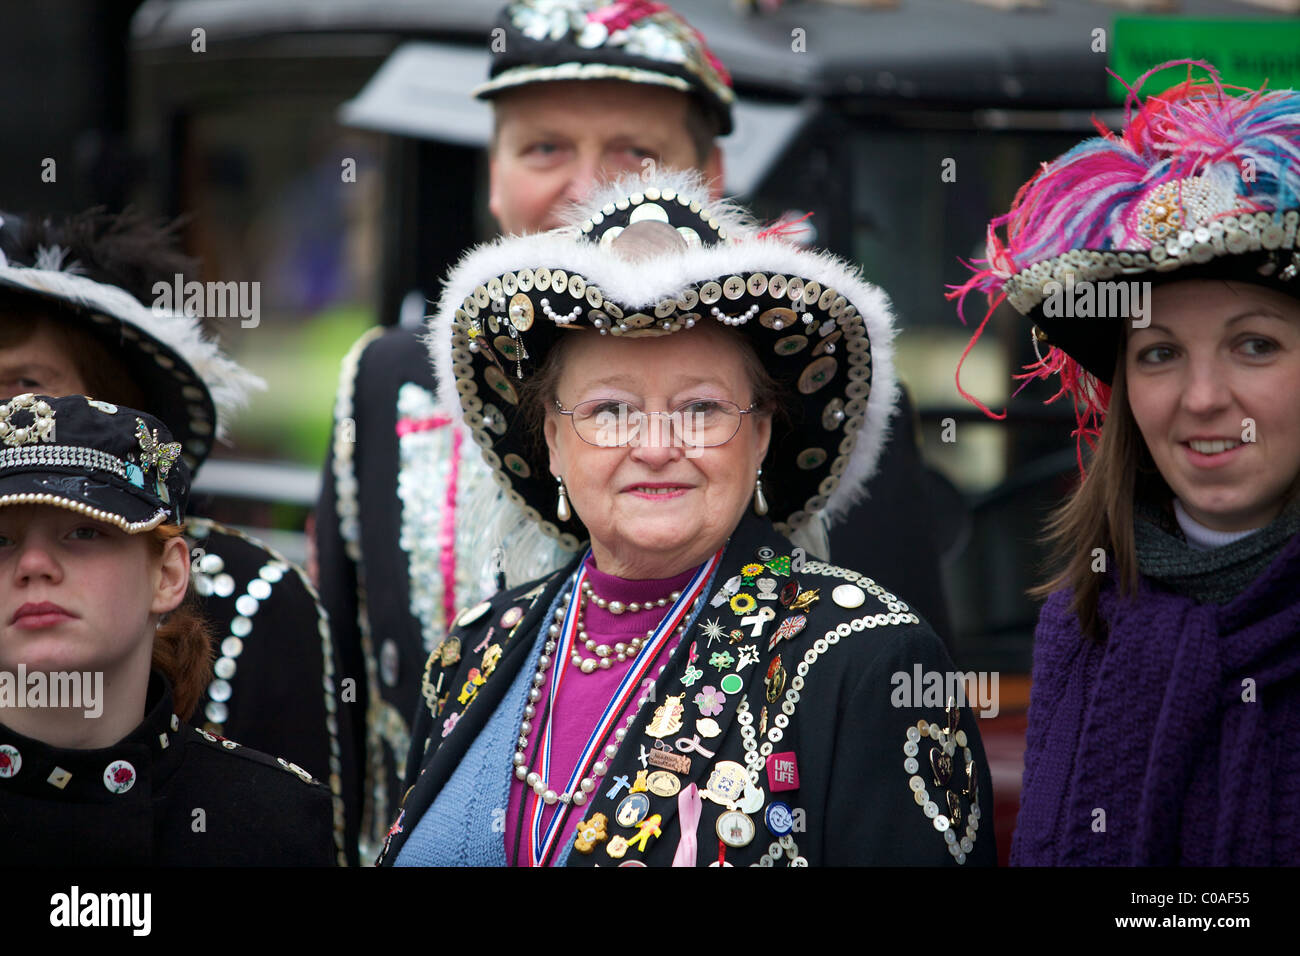 Pearly King and Queens at The New Years day Parade London - Stock Image